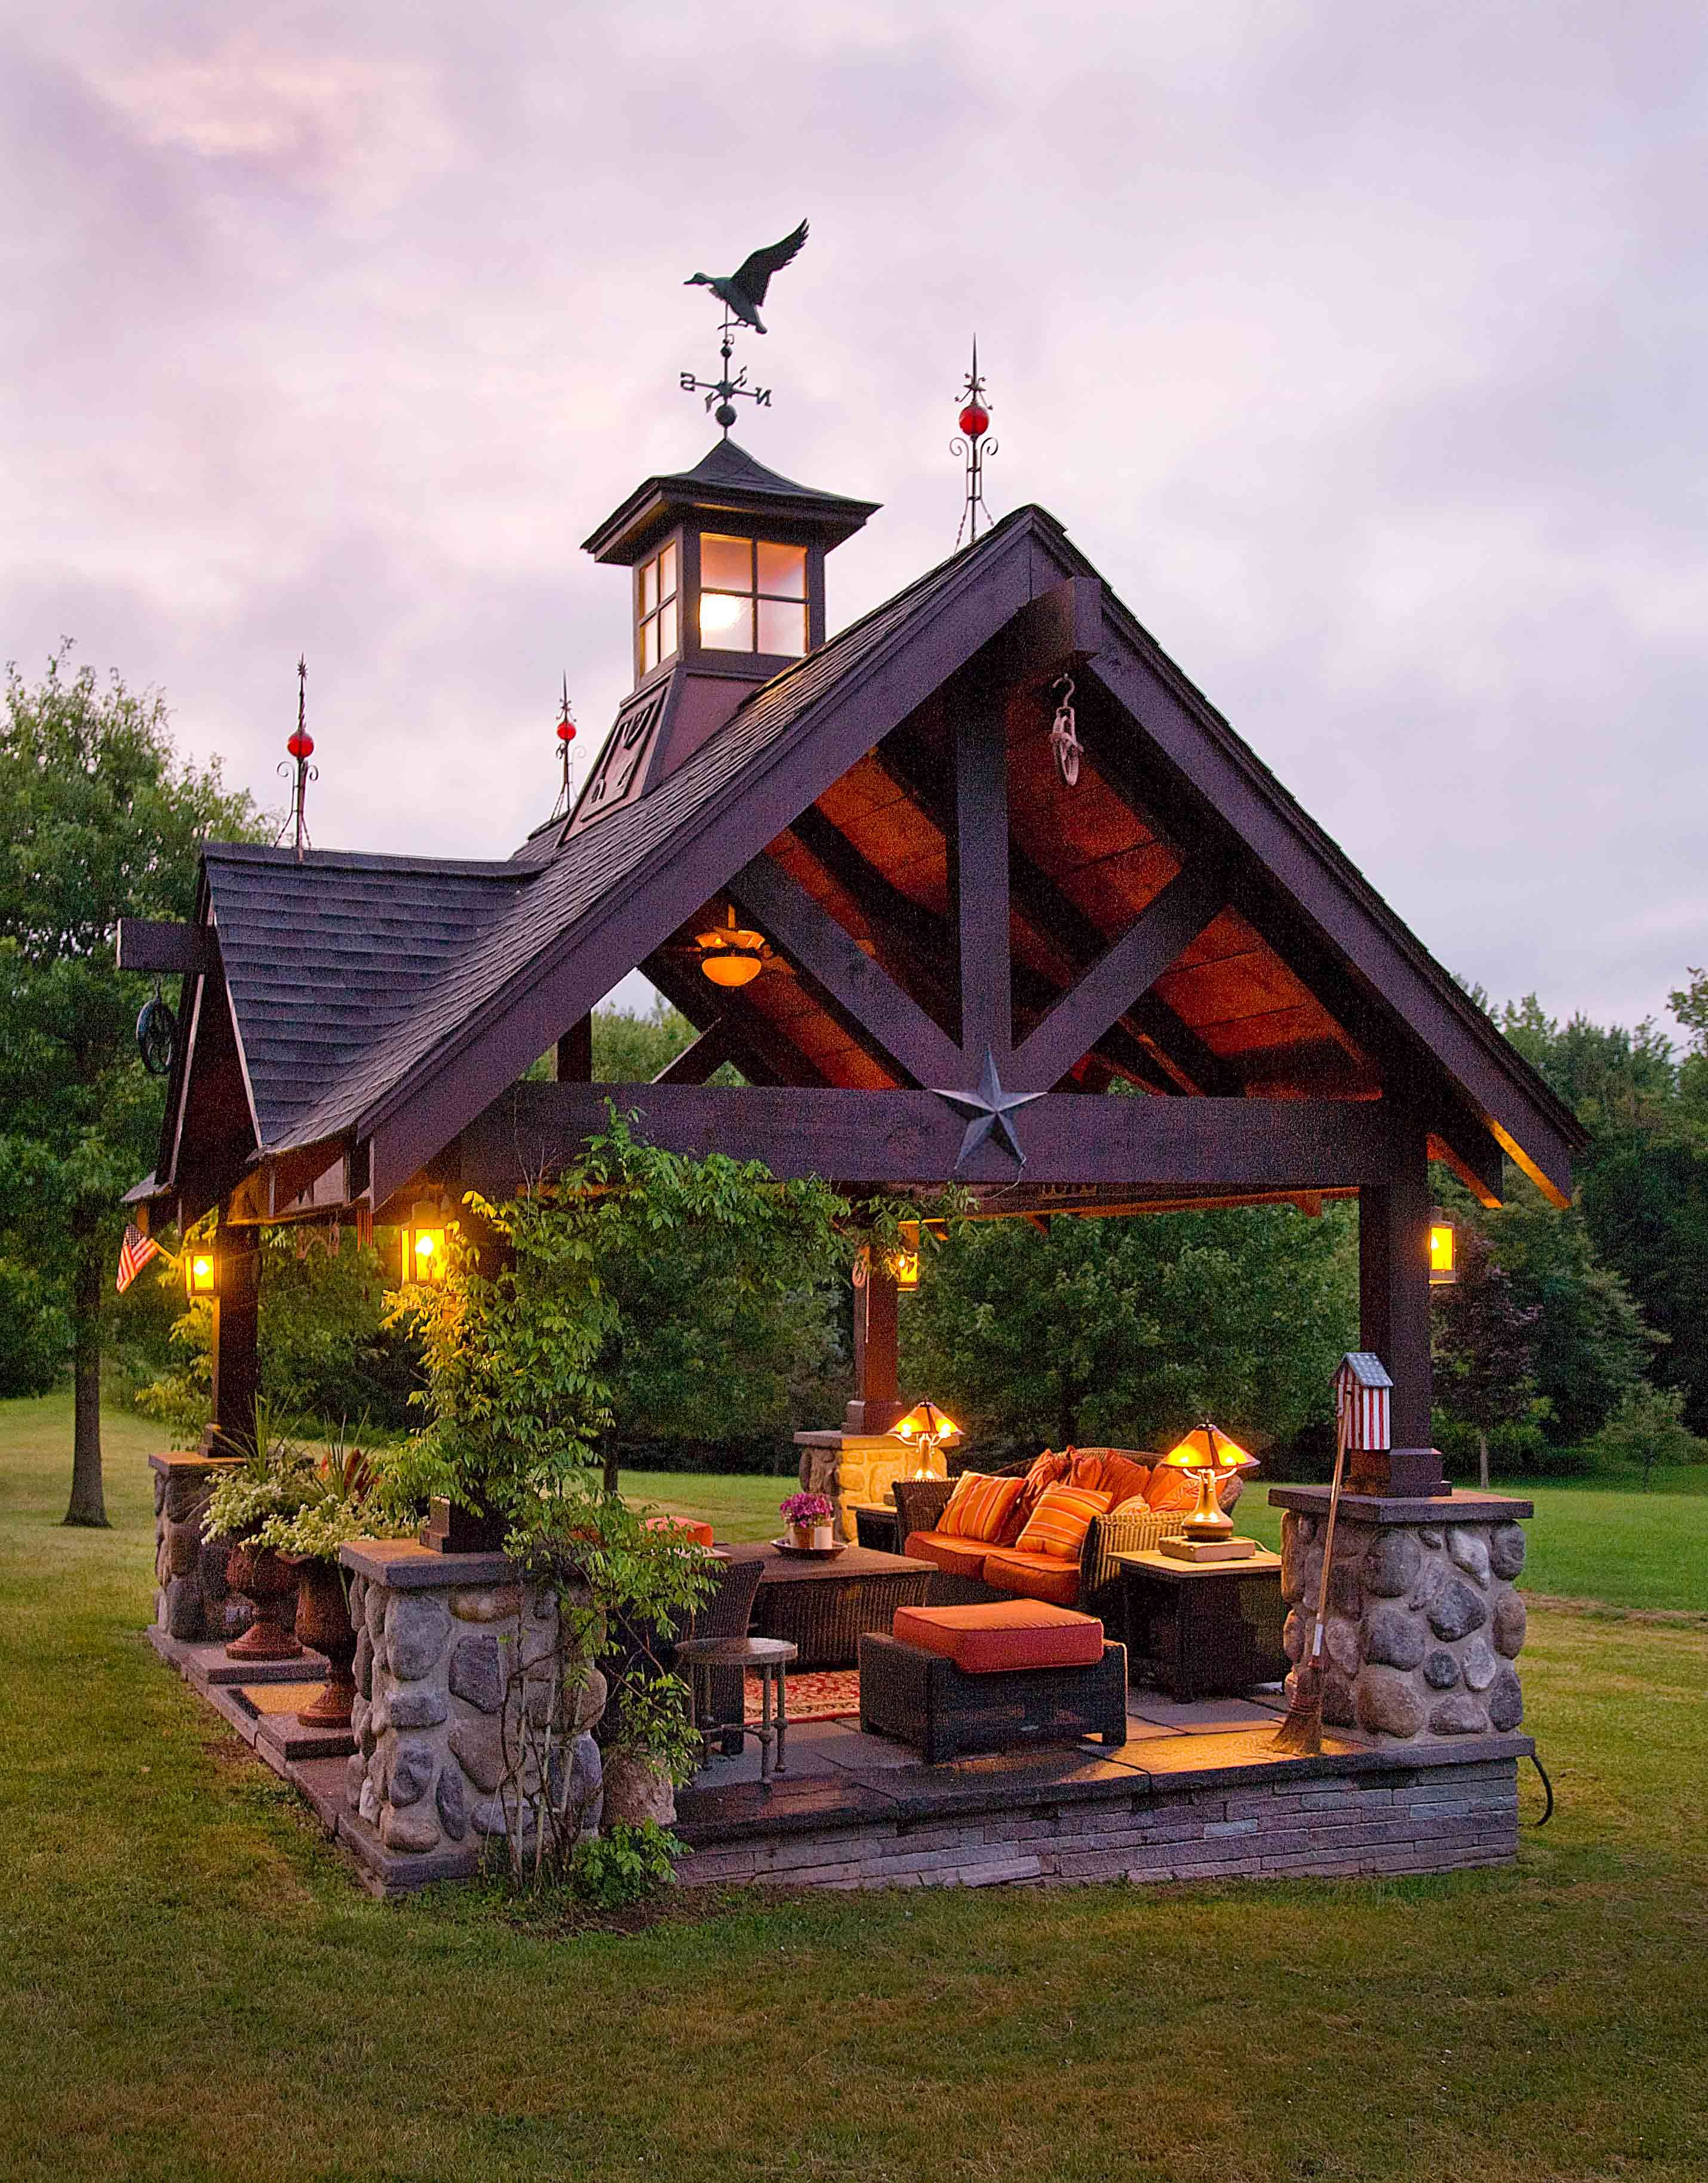 Outdoor Livingroom Yes Please Lightning Rods Ok The N E S W Goose Would Have To Go Tho Haha Backyard Dream Backyard Outdoor Living